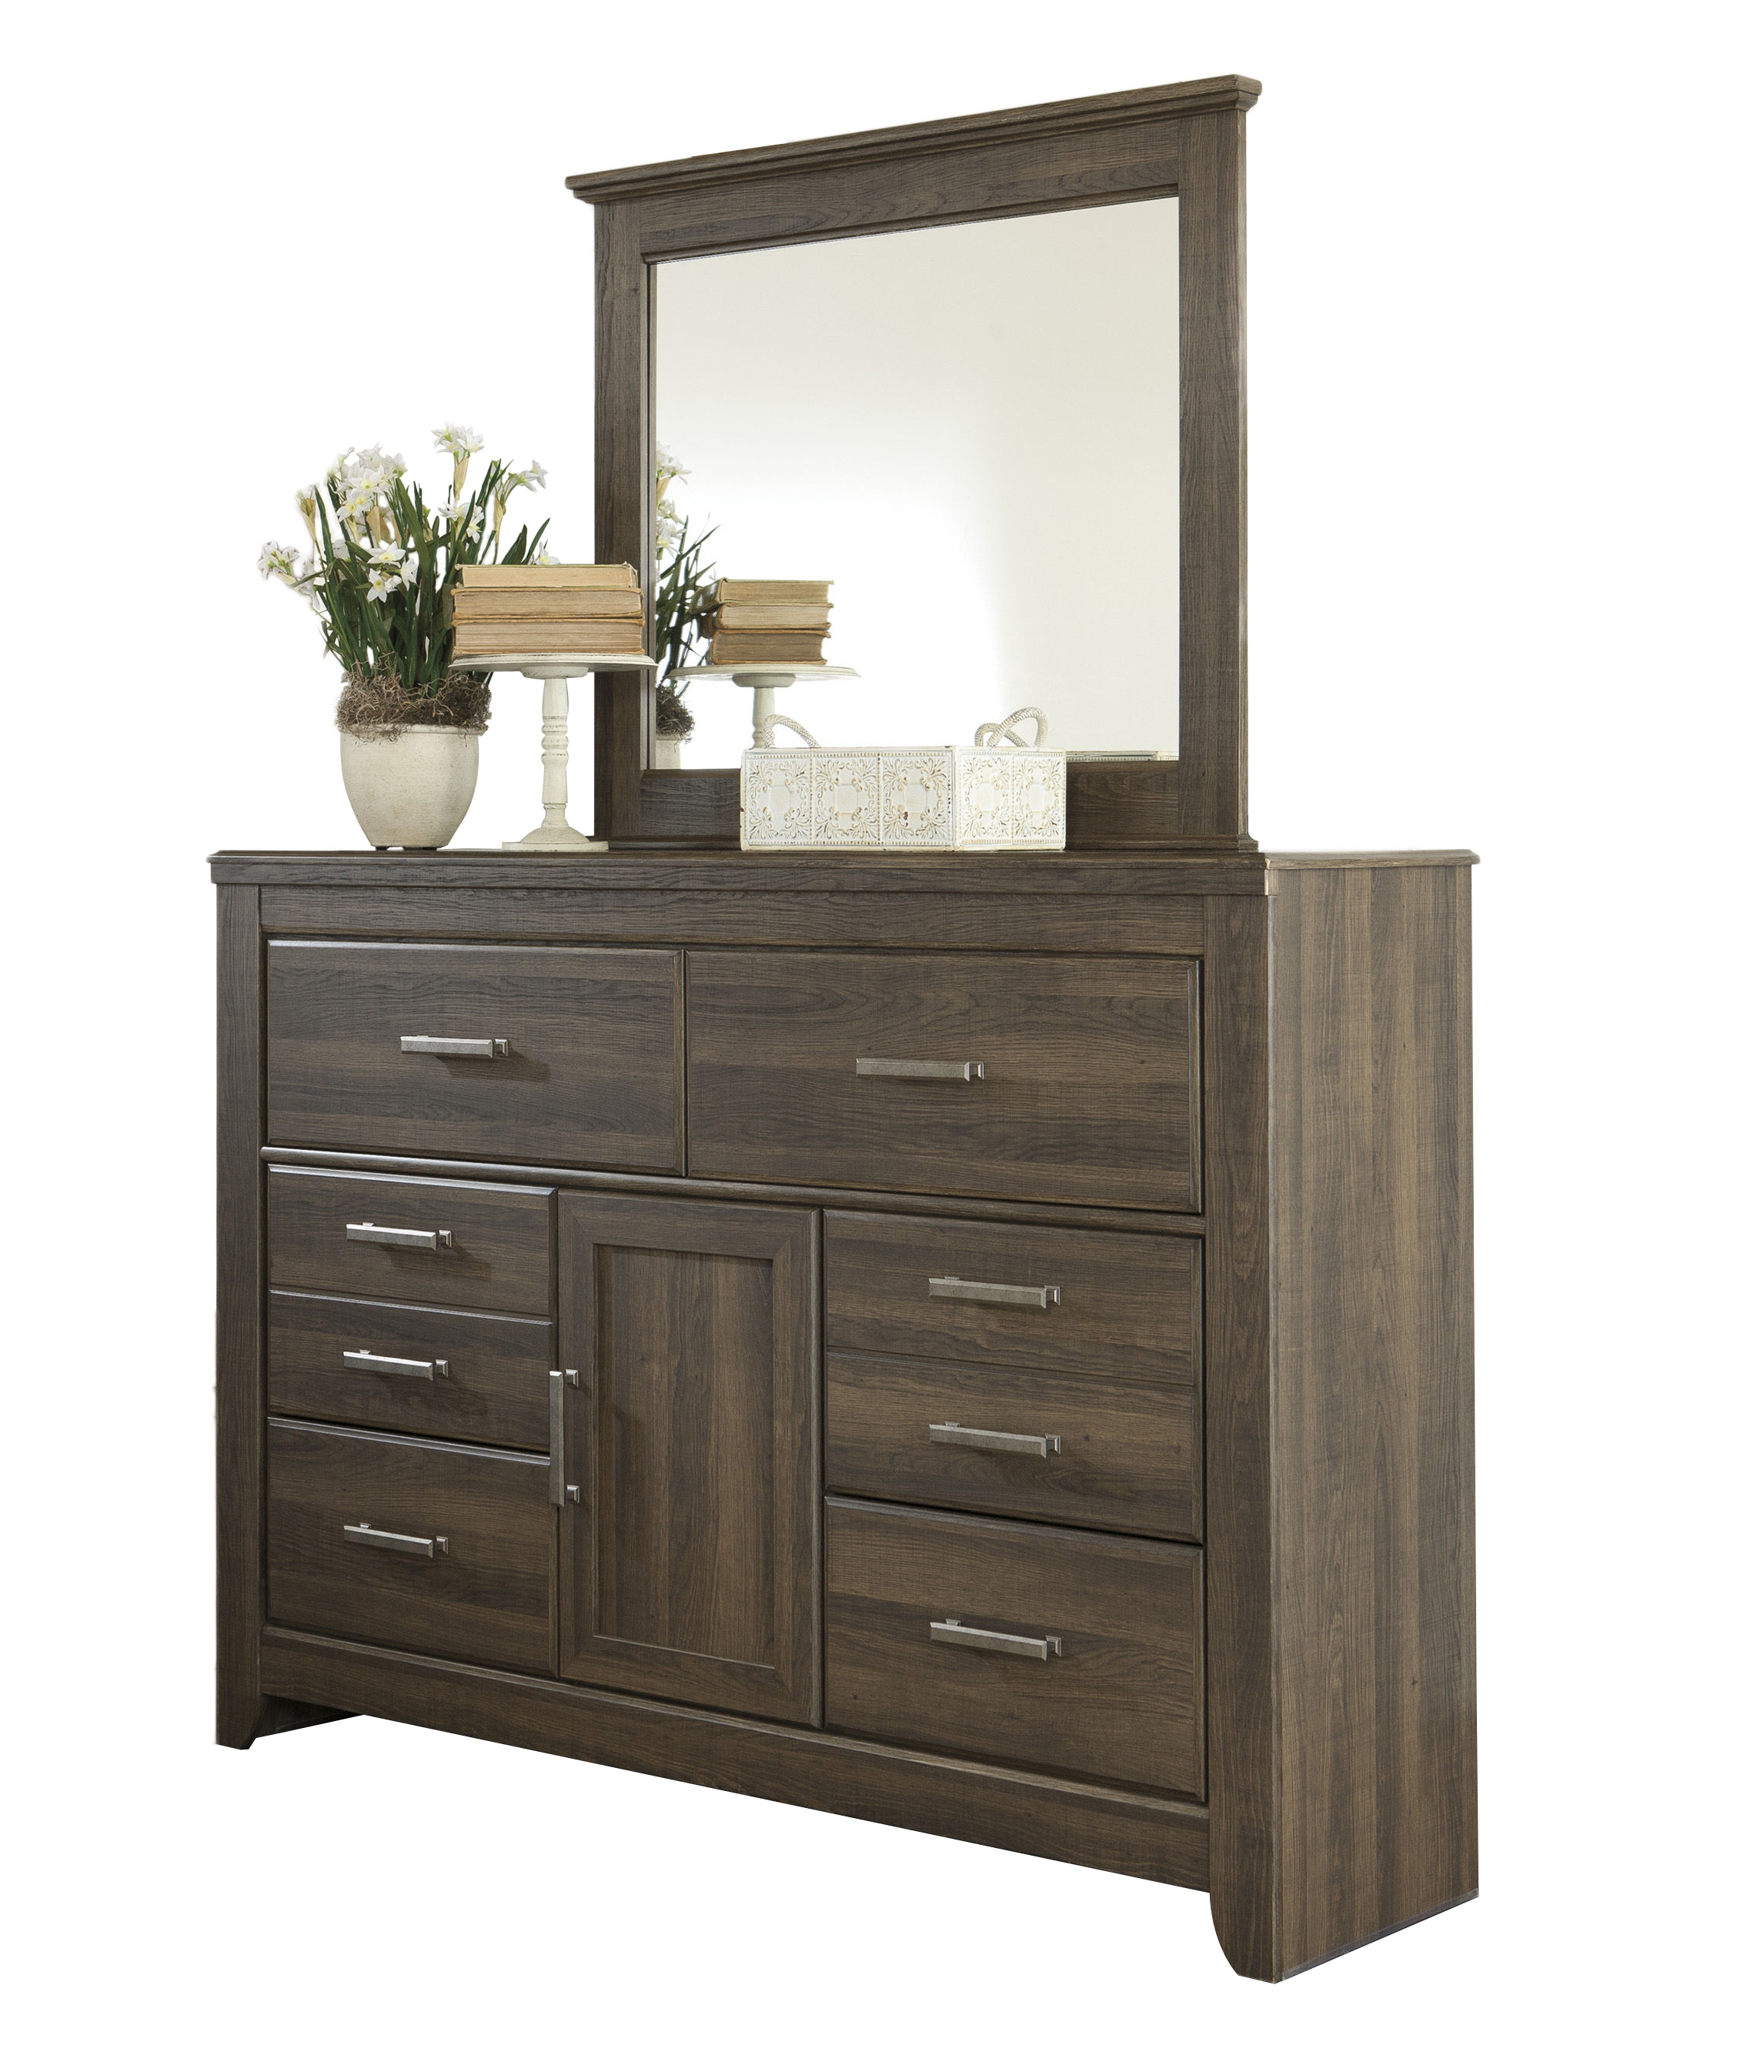 Ashley Furniture Juararo Wood Glass Dresser And Mirror